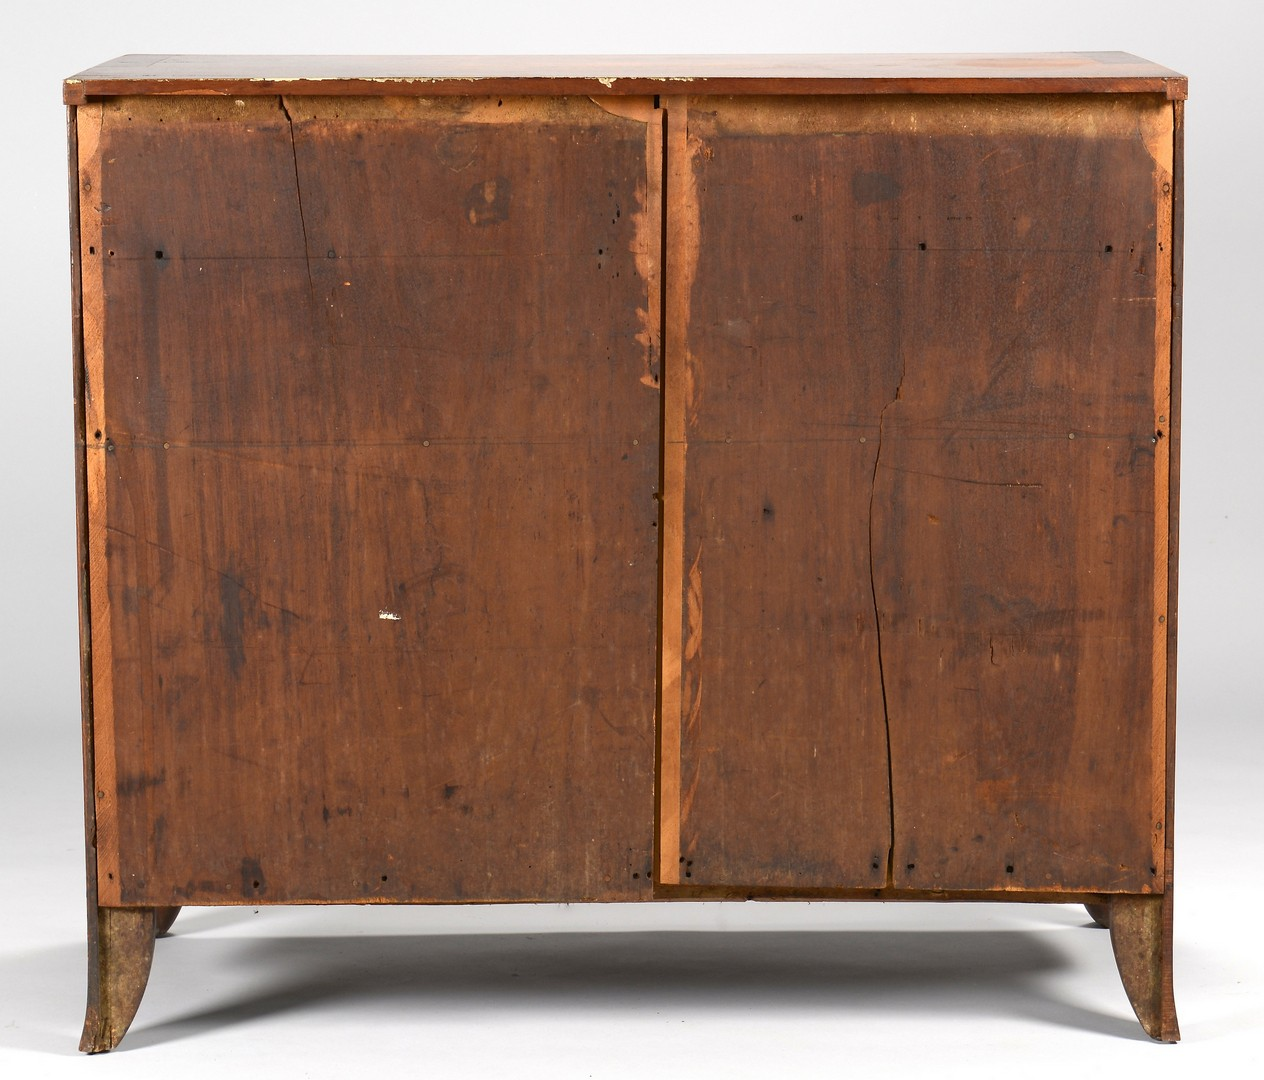 Lot 166: East TN Federal Inlaid Chest of Drawers